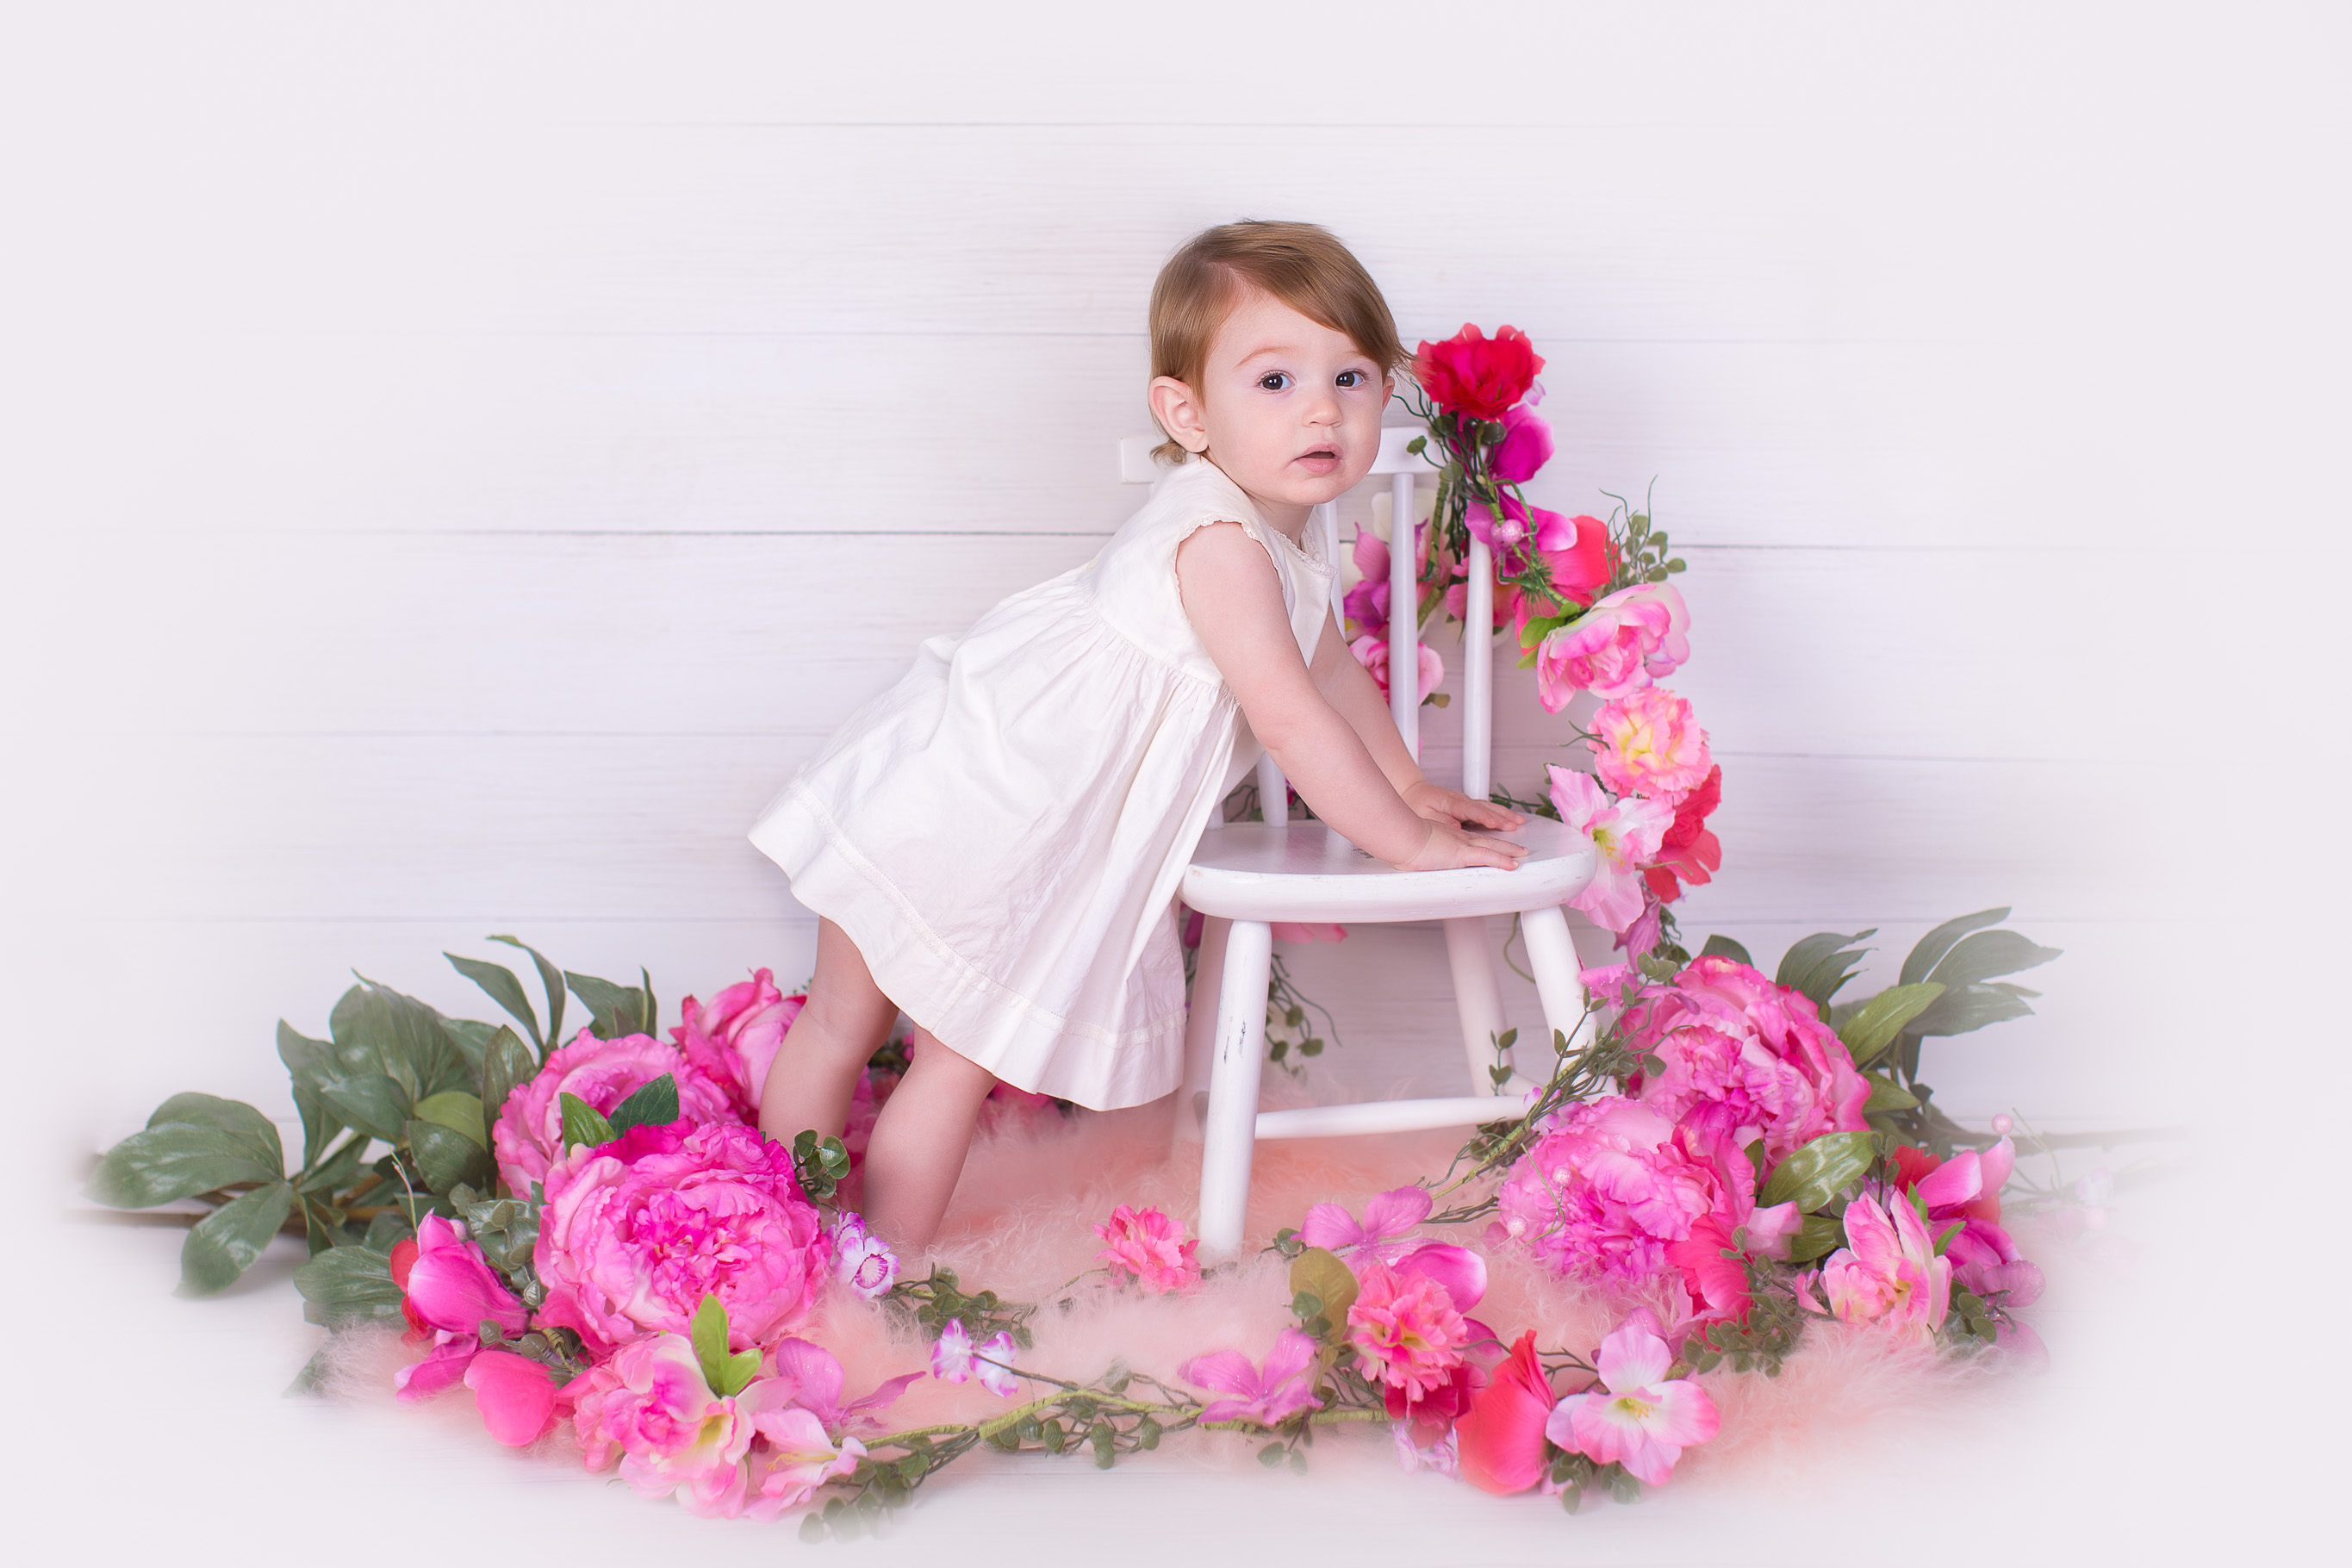 Image of one year old girl wearing white dress posing for cake smash session with pink flowers around her